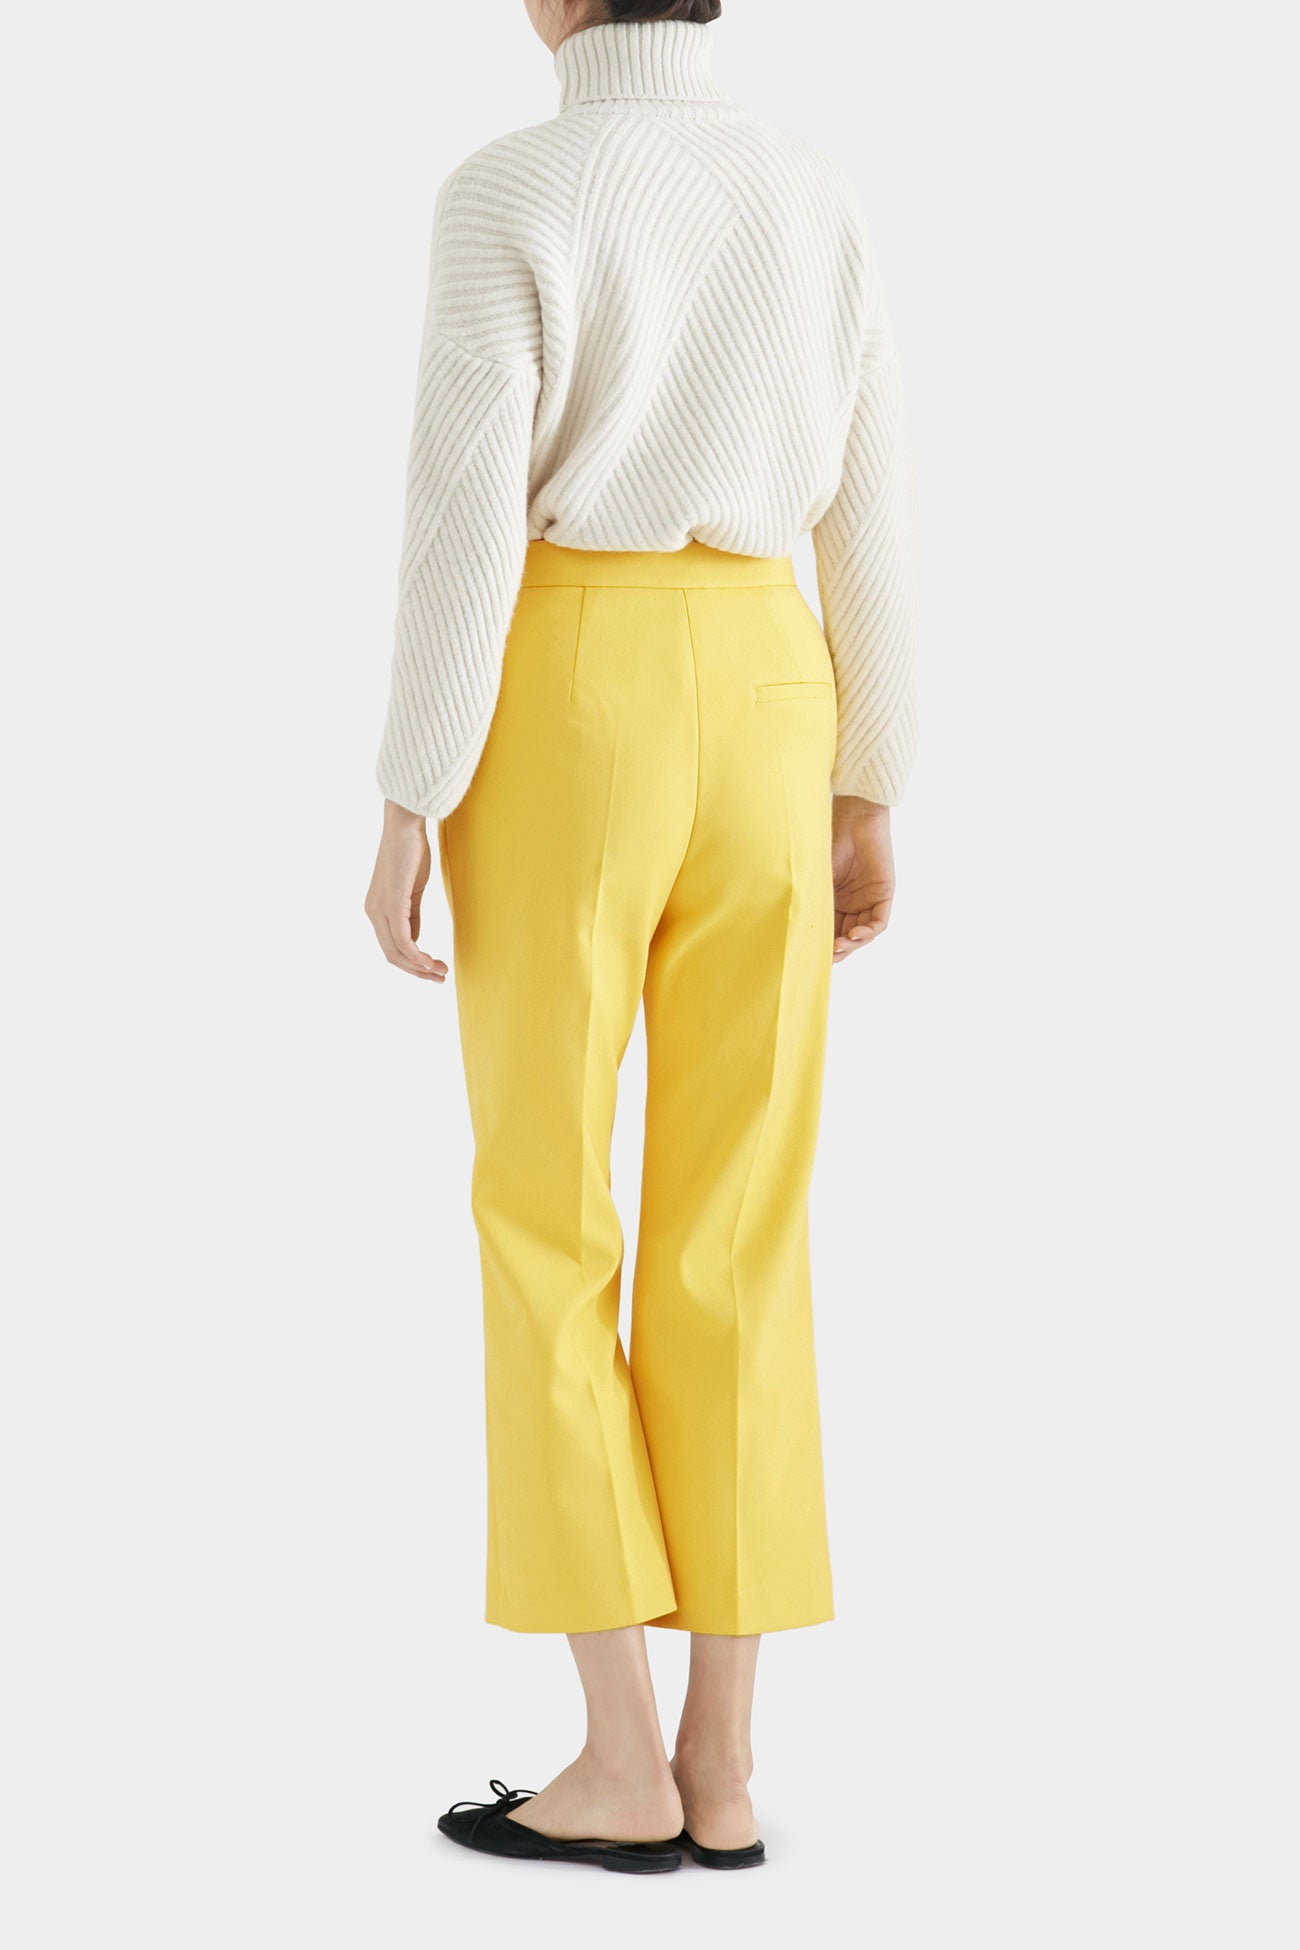 LEMON BONIE TIDY FLARE PANTS